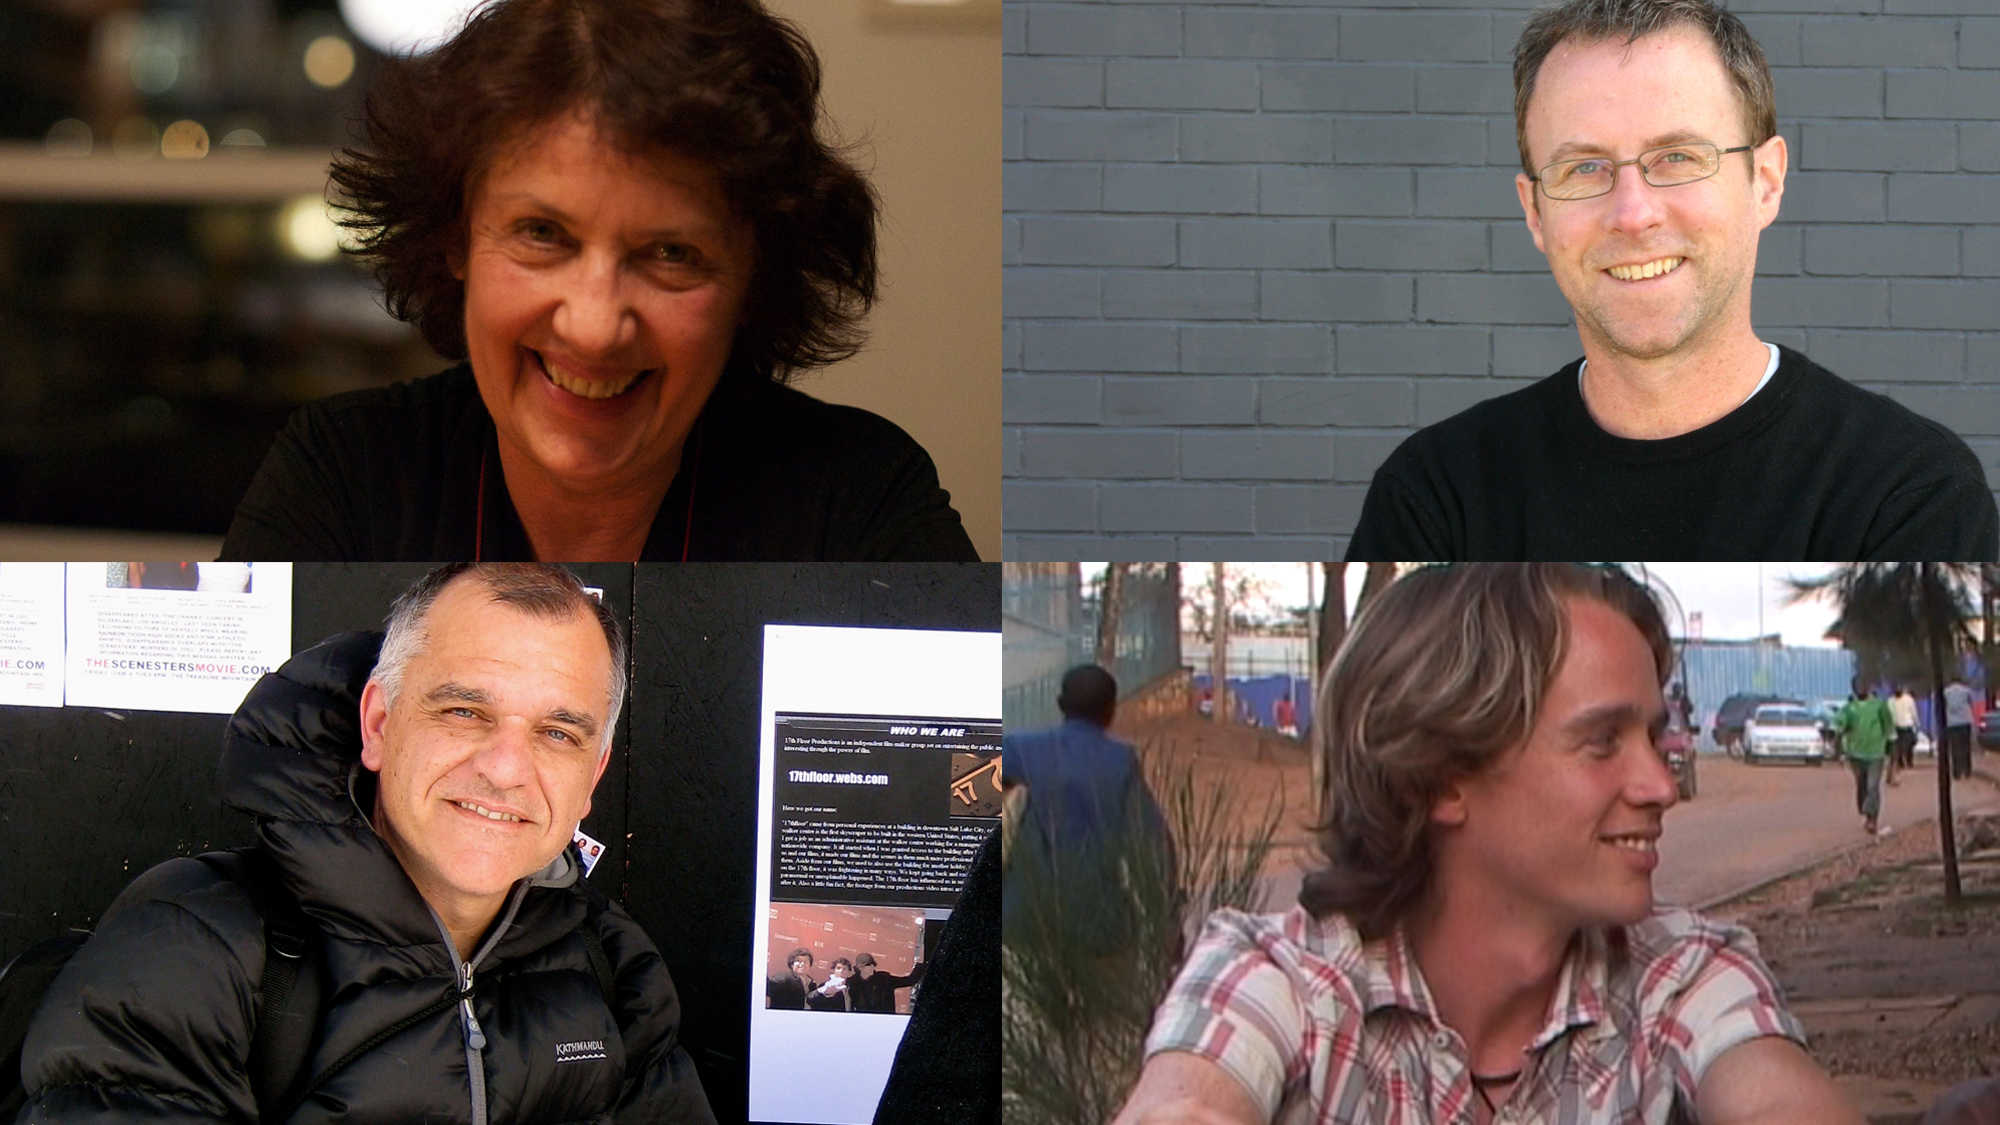 Meet the Filmmakers: Stories We Tell (image 1)